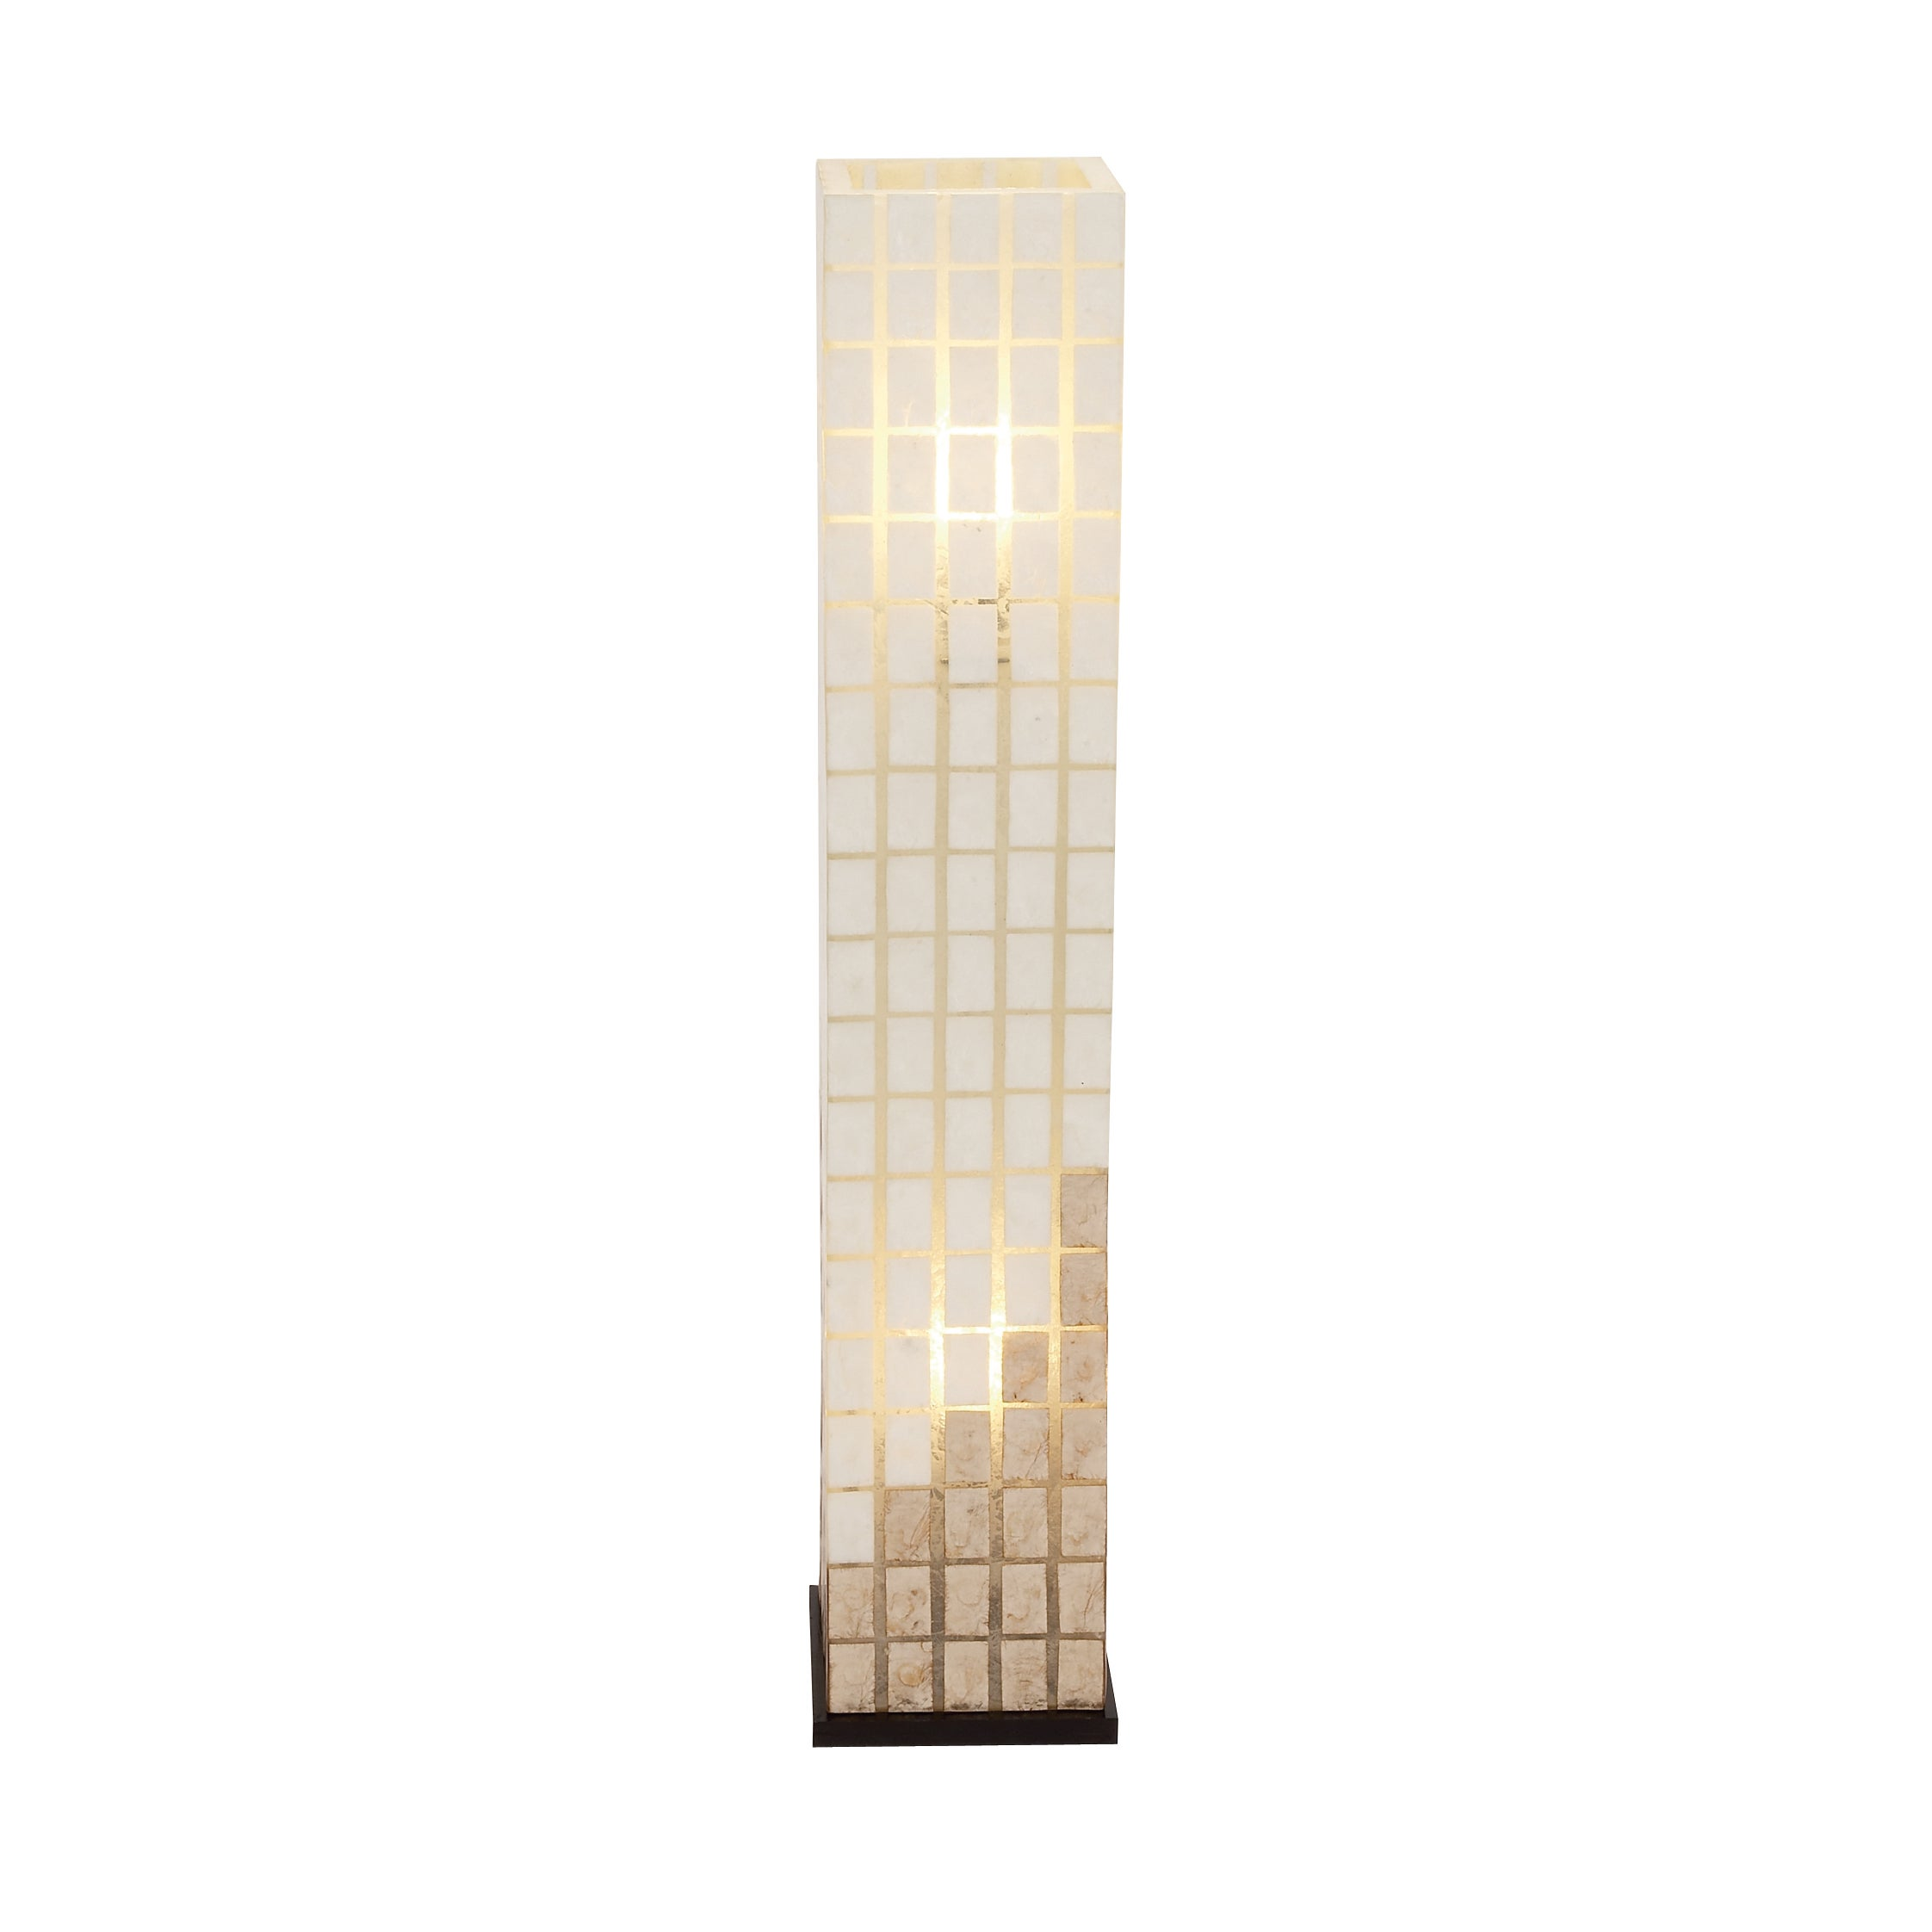 nancy free storage with capiz ideas floor for contemporary new lamp to decorative com spider shades cool cfl at of overstock walmart living fluorescent from target source arm lamps home crystal full corzine lights bronze image standing ceiling what size torchiere s andre depot shade room floors bedroom